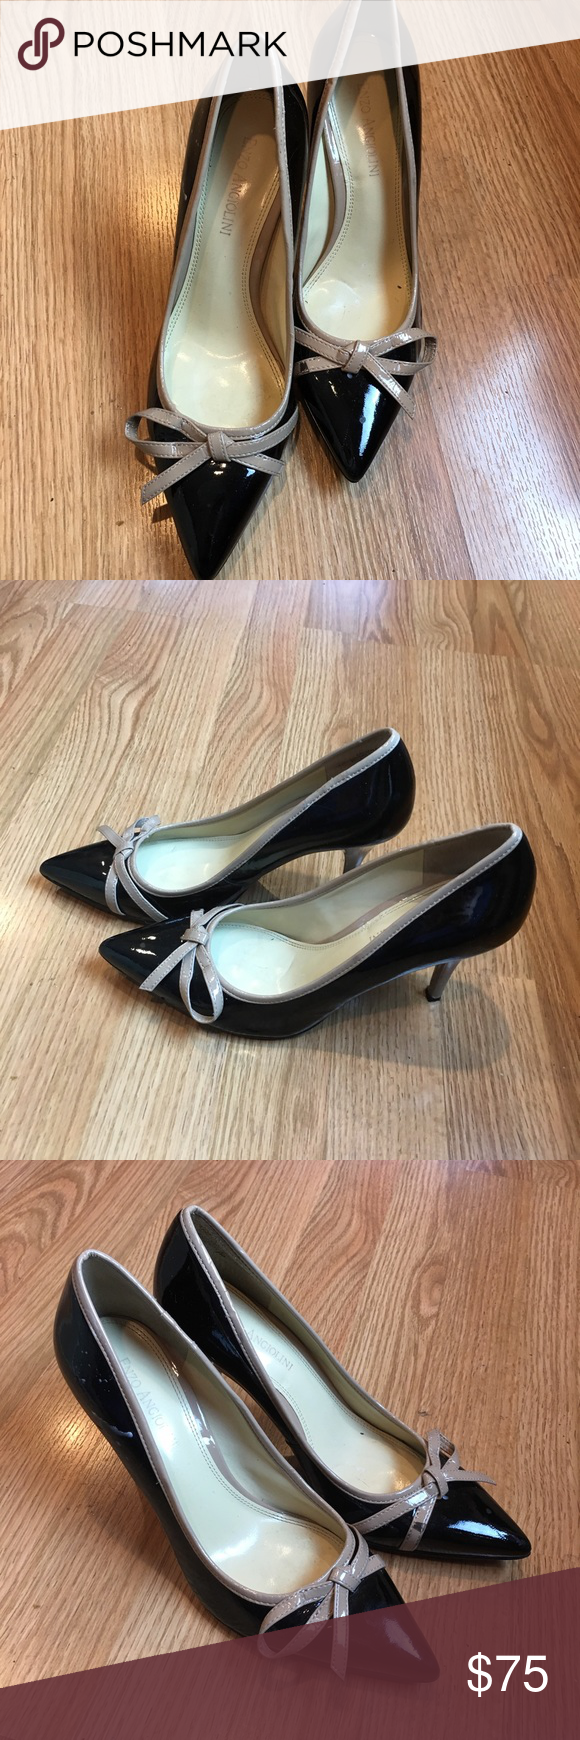 SALE Enzo Angiolini patent leather pumps Enzo Angiolini black and tan leather pumps  flirty, fun style for day or night. Comfortable shoes only worn once. Size 7 M. ✨ Enzo Angiolini Shoes Heels